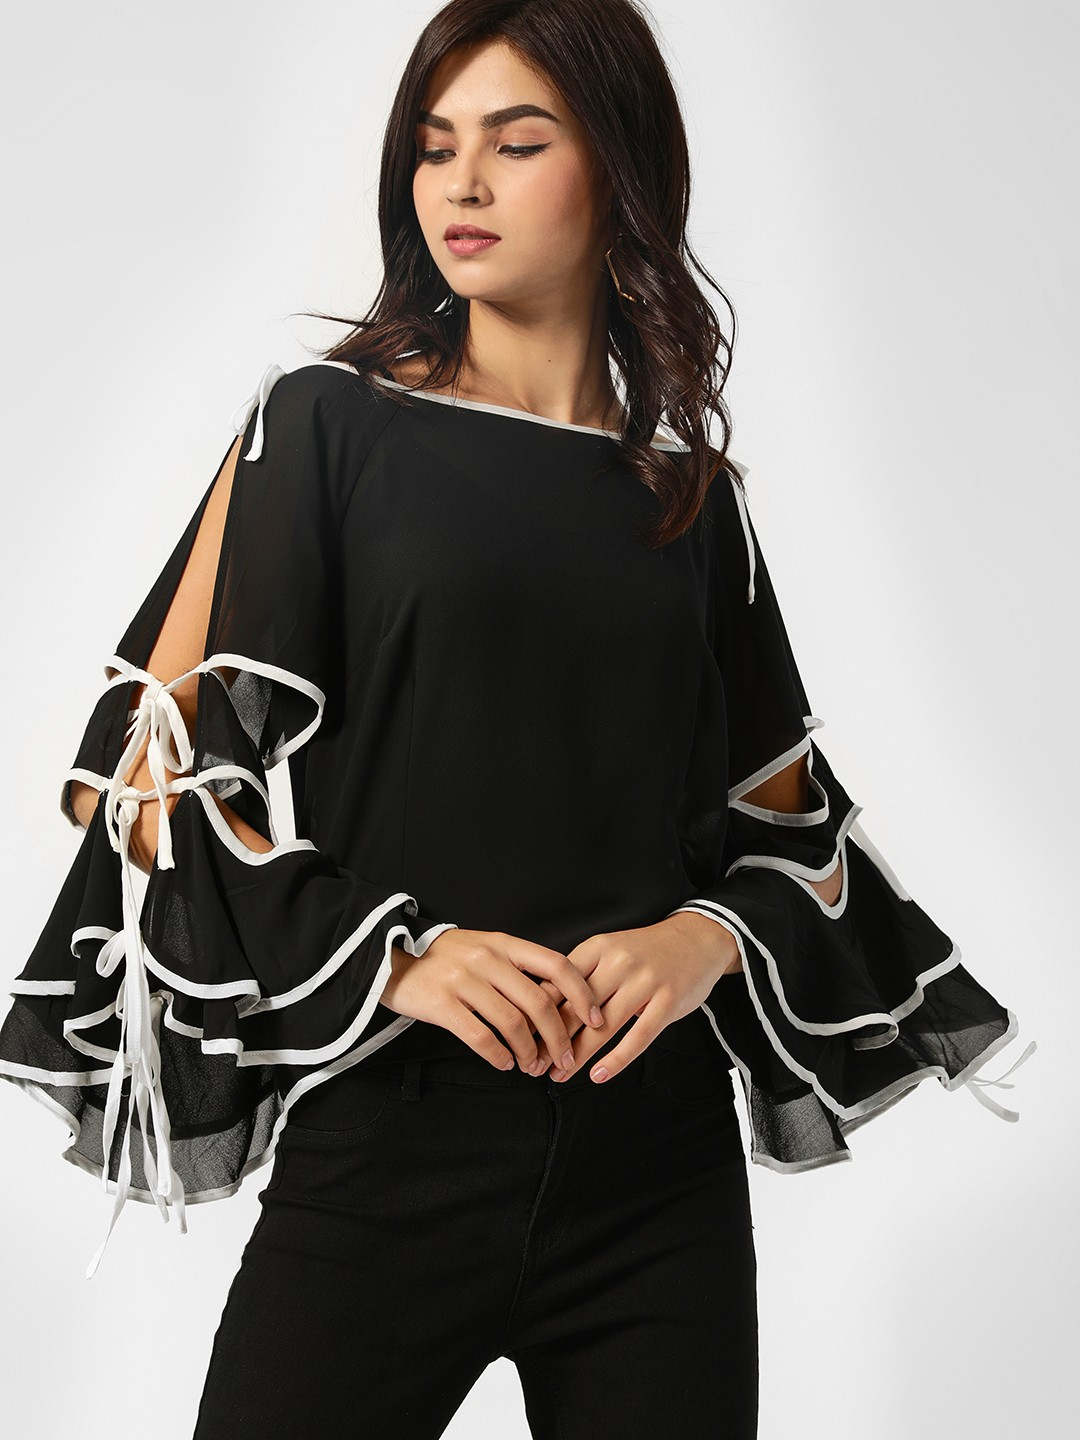 Moguland Black Contrast Tie-Up Sleeve Blouse 1